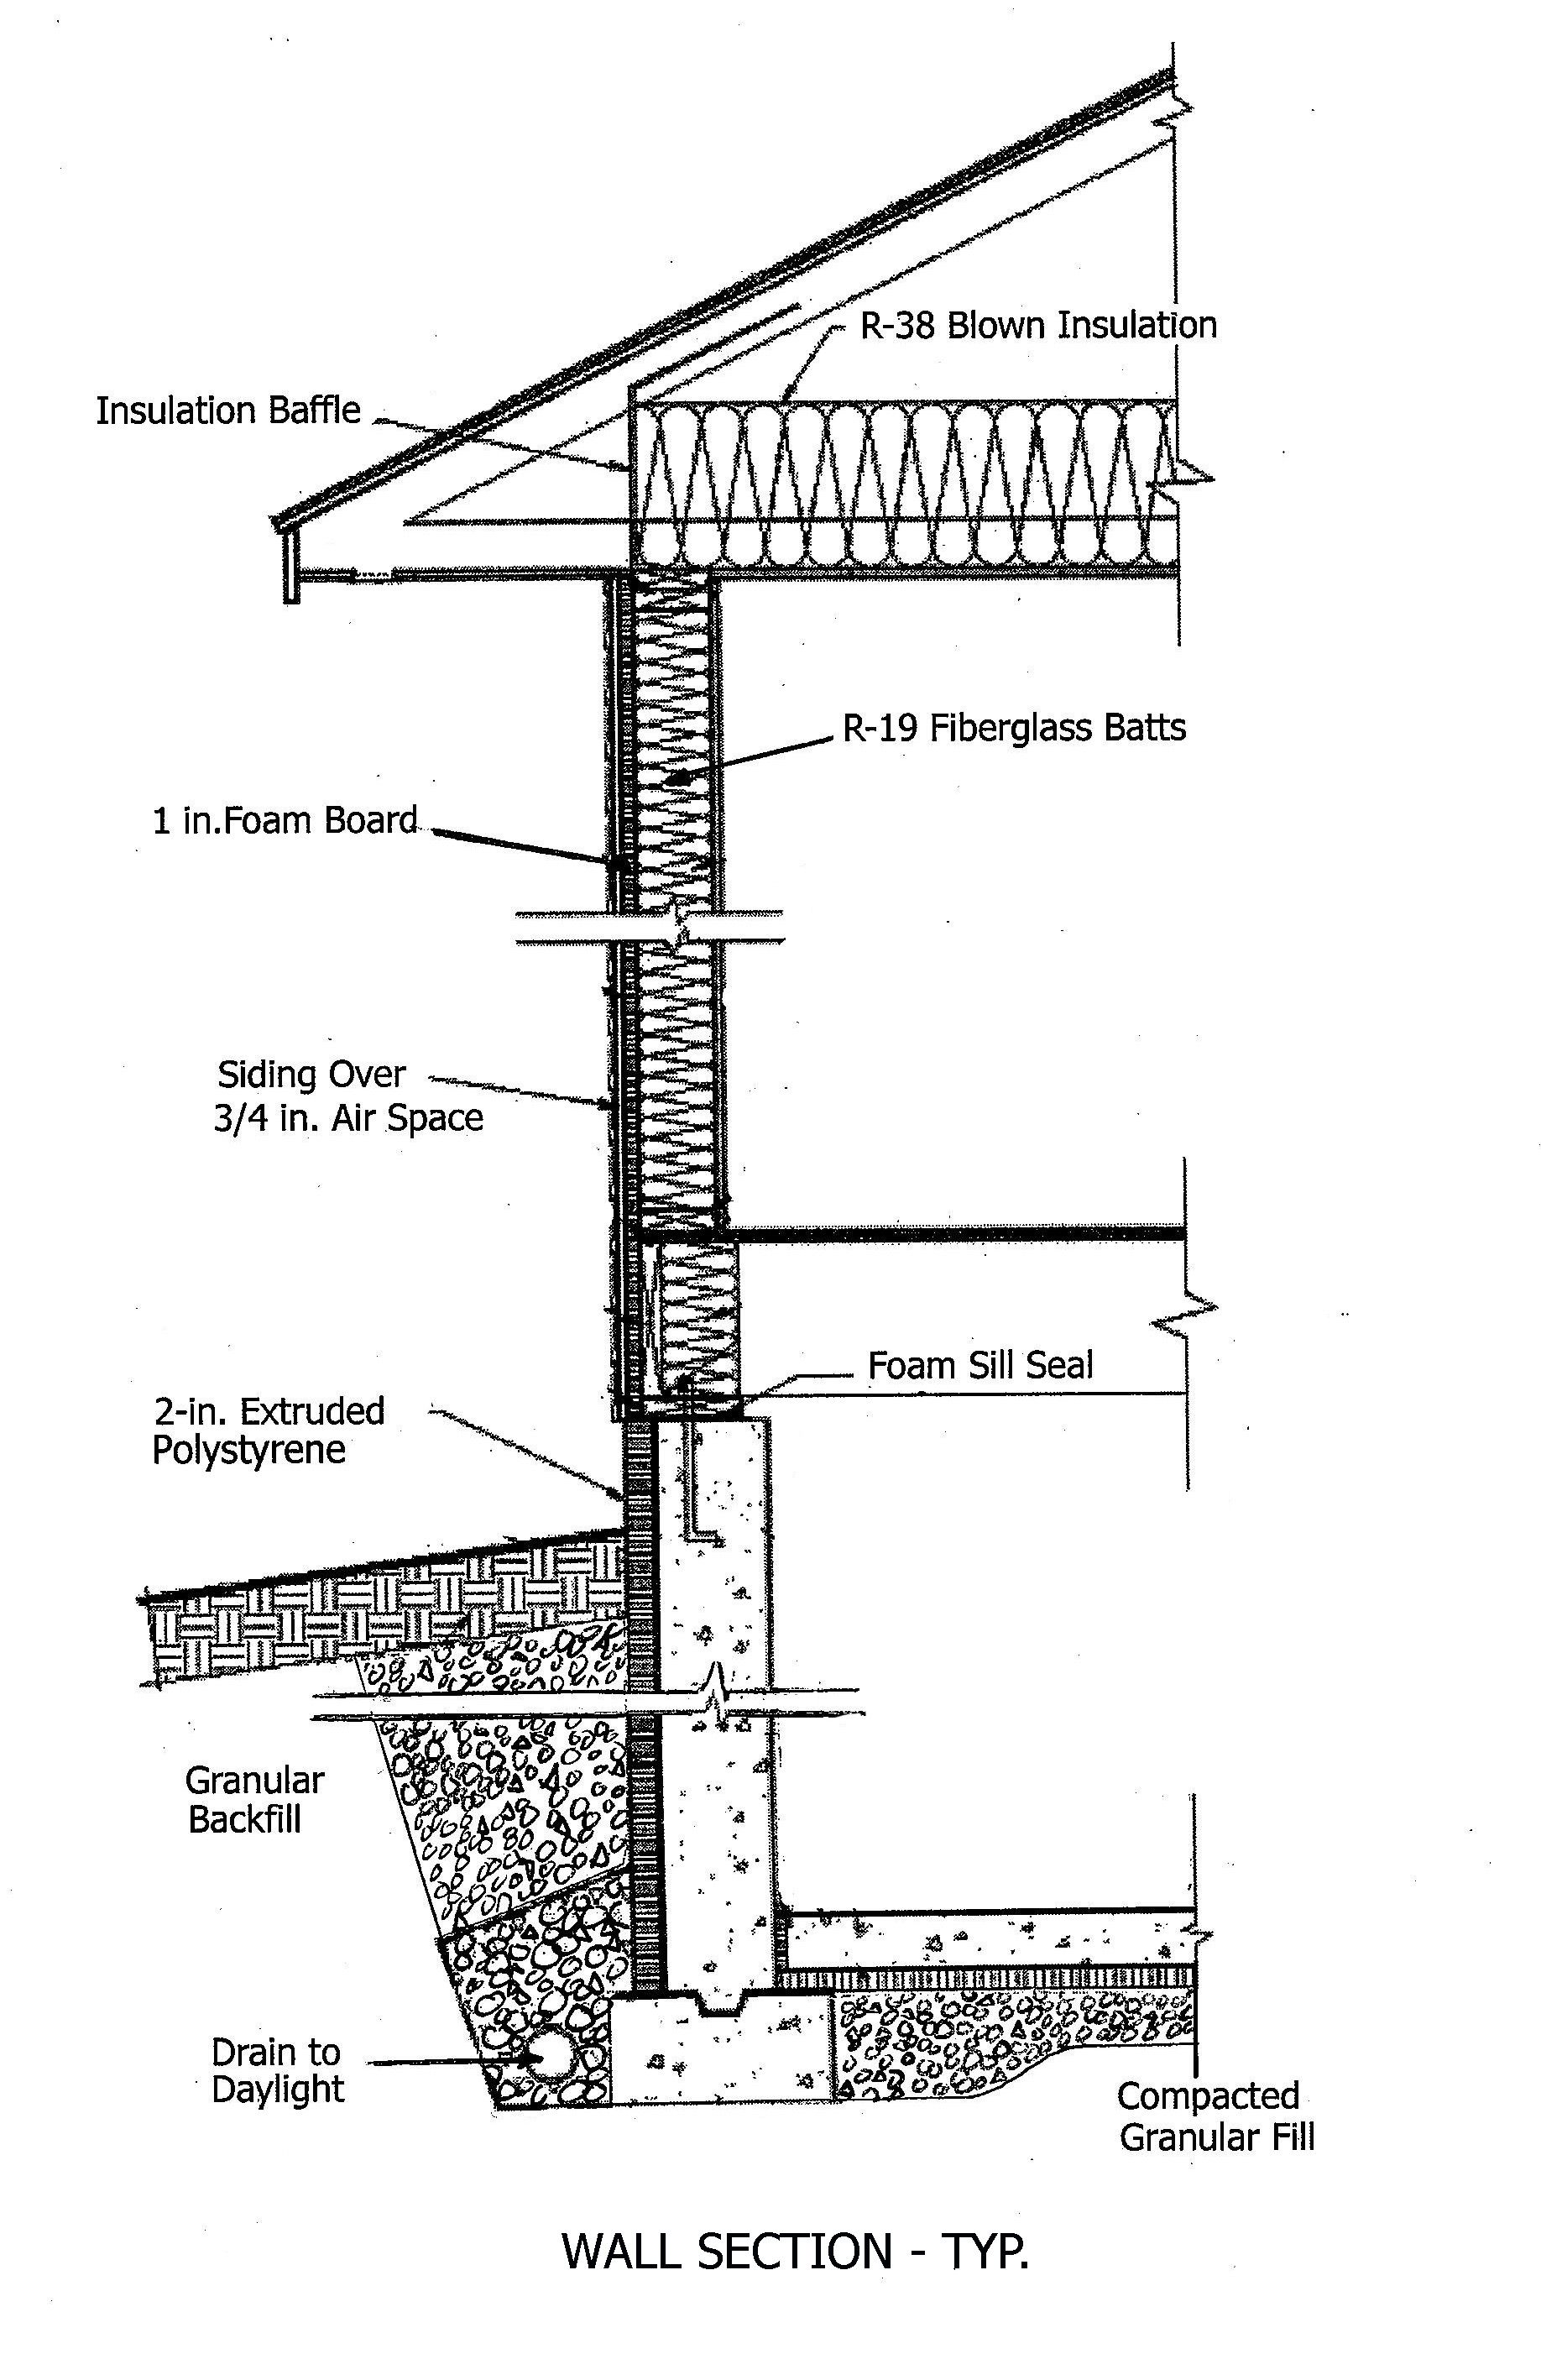 wall section diagram